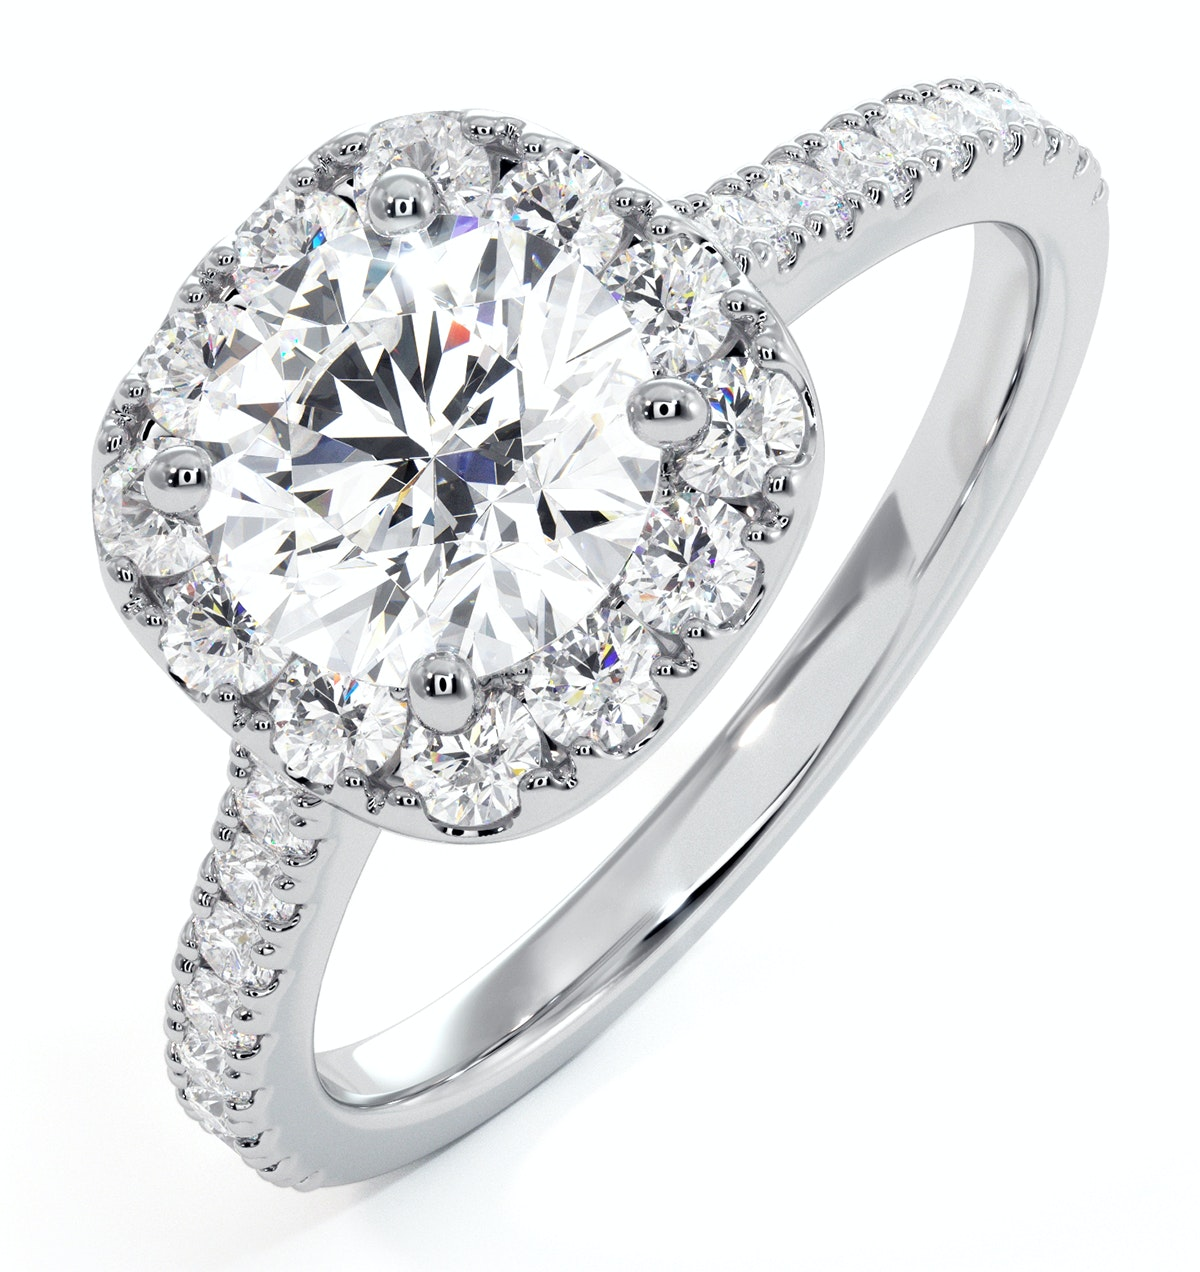 Elizabeth GIA Diamond Halo Engagement Ring in Platinum 1.70ct G/SI2